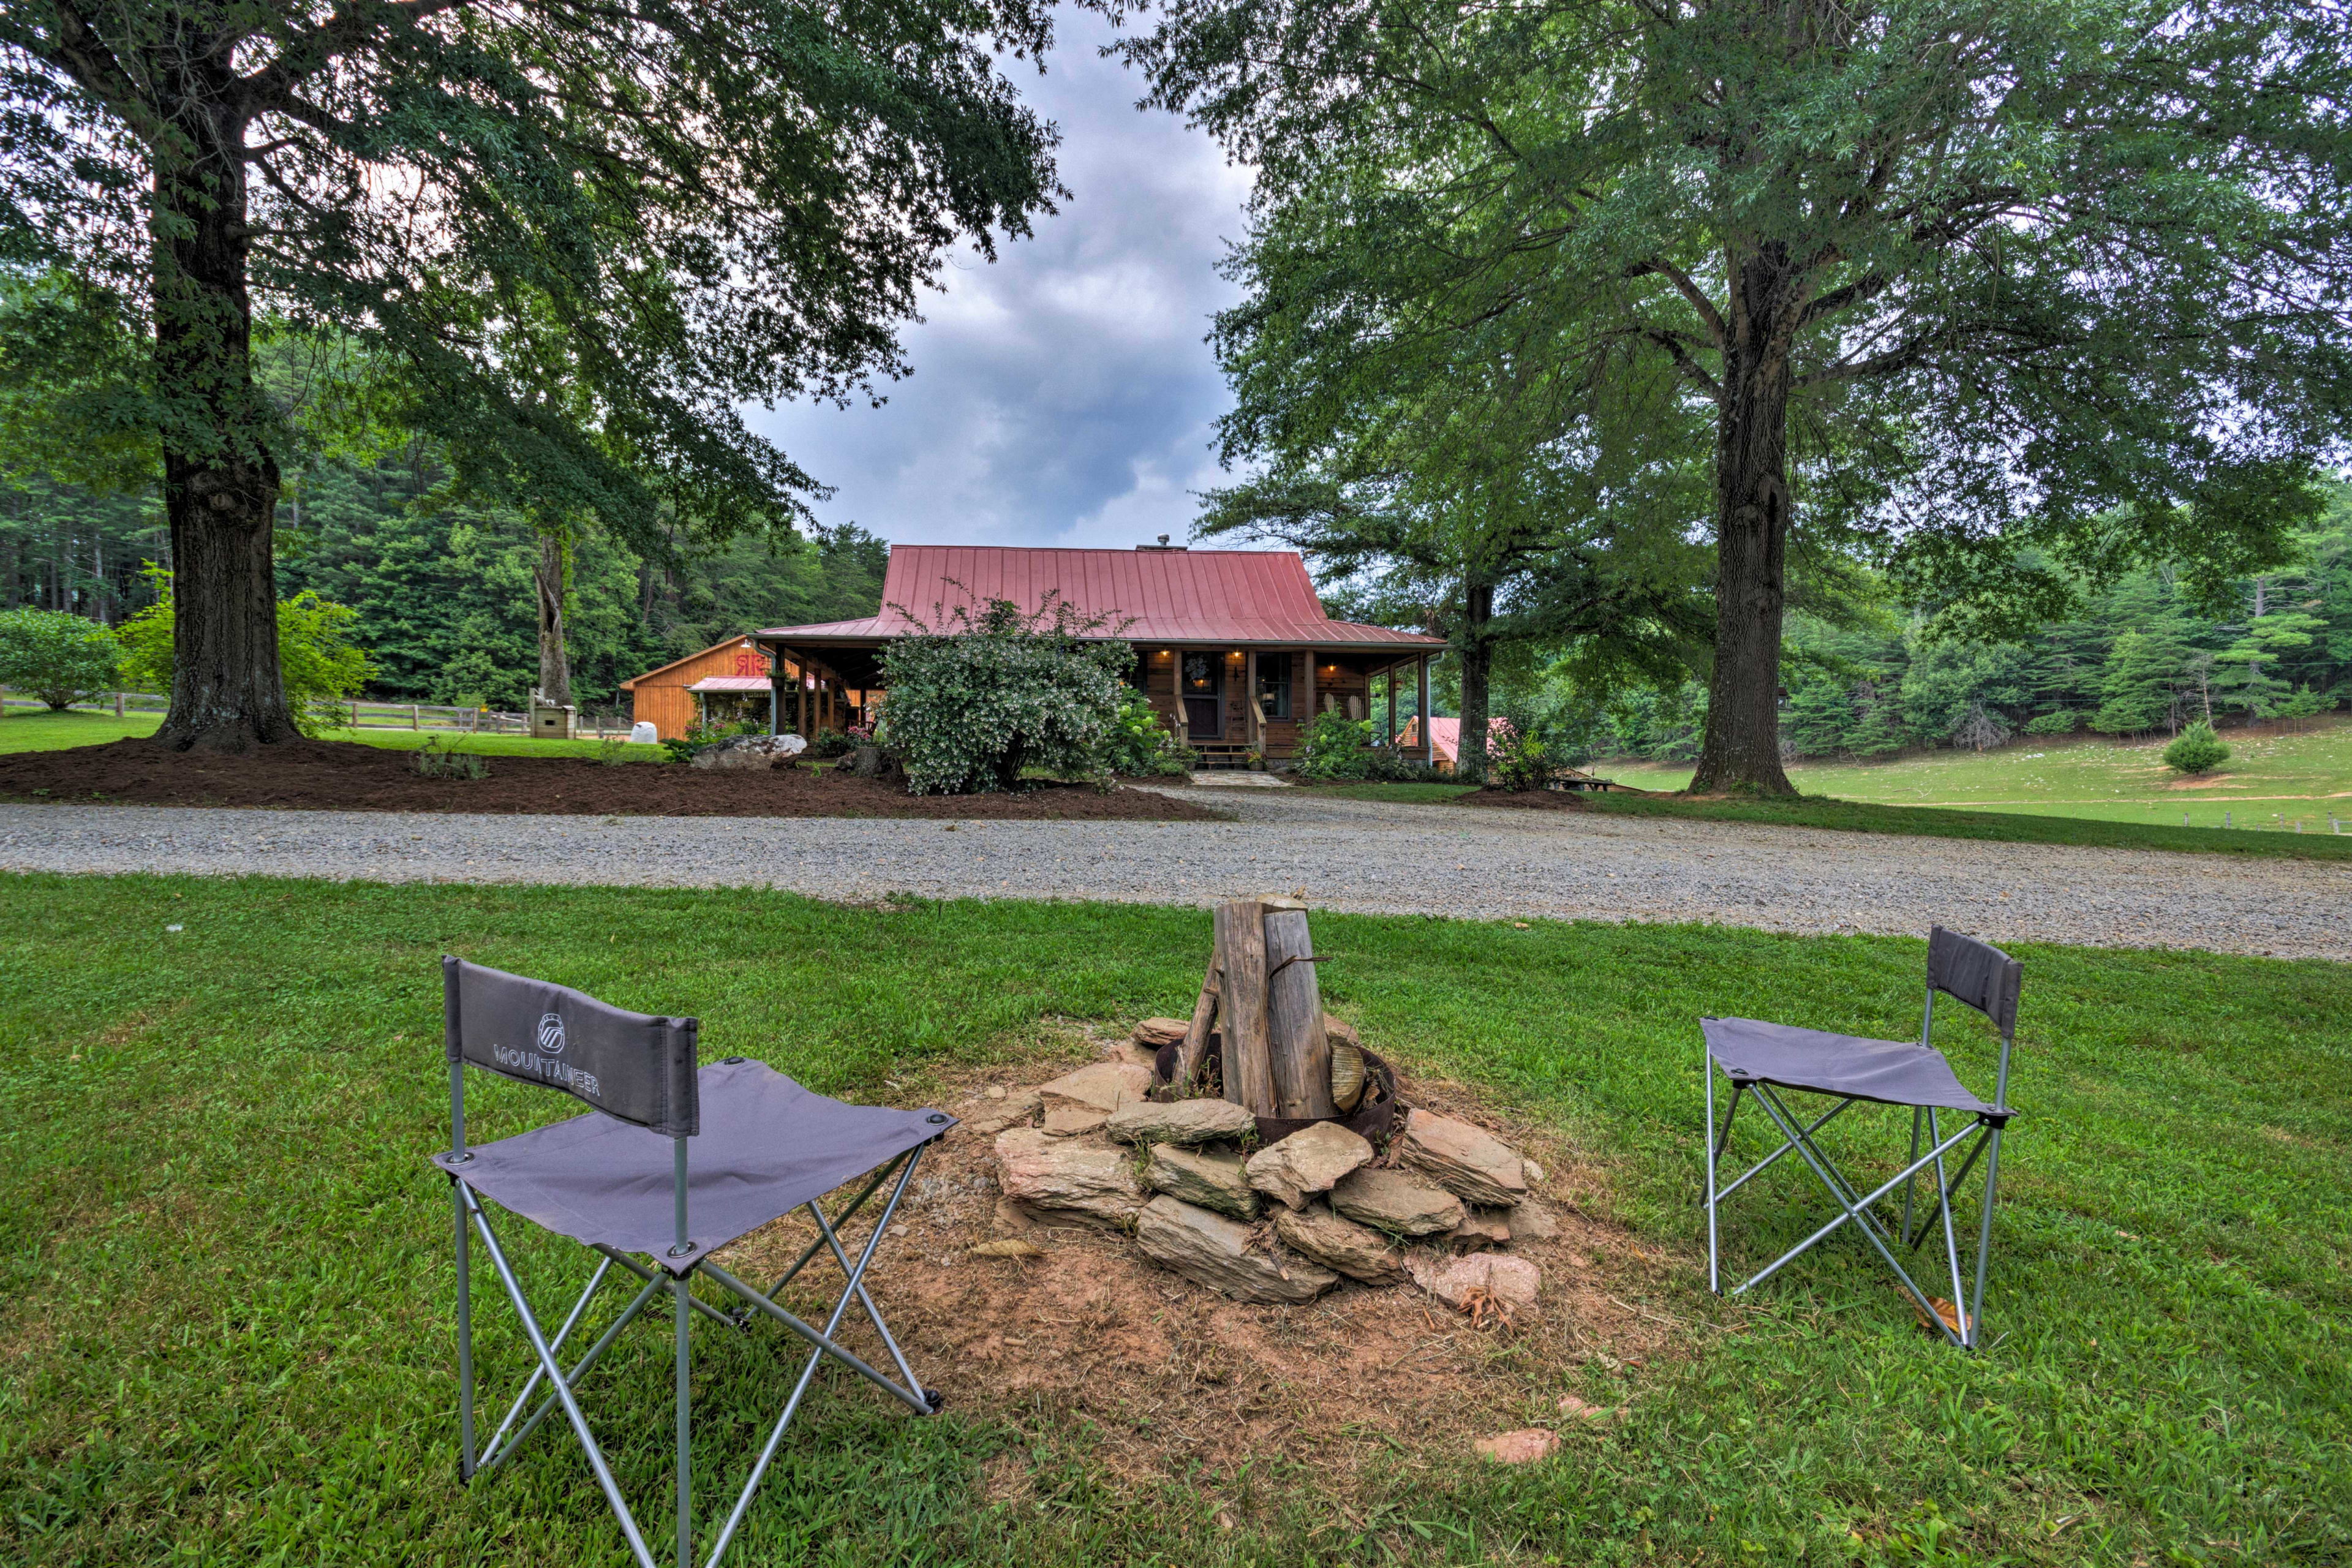 A fire pit is also featured in the yard.